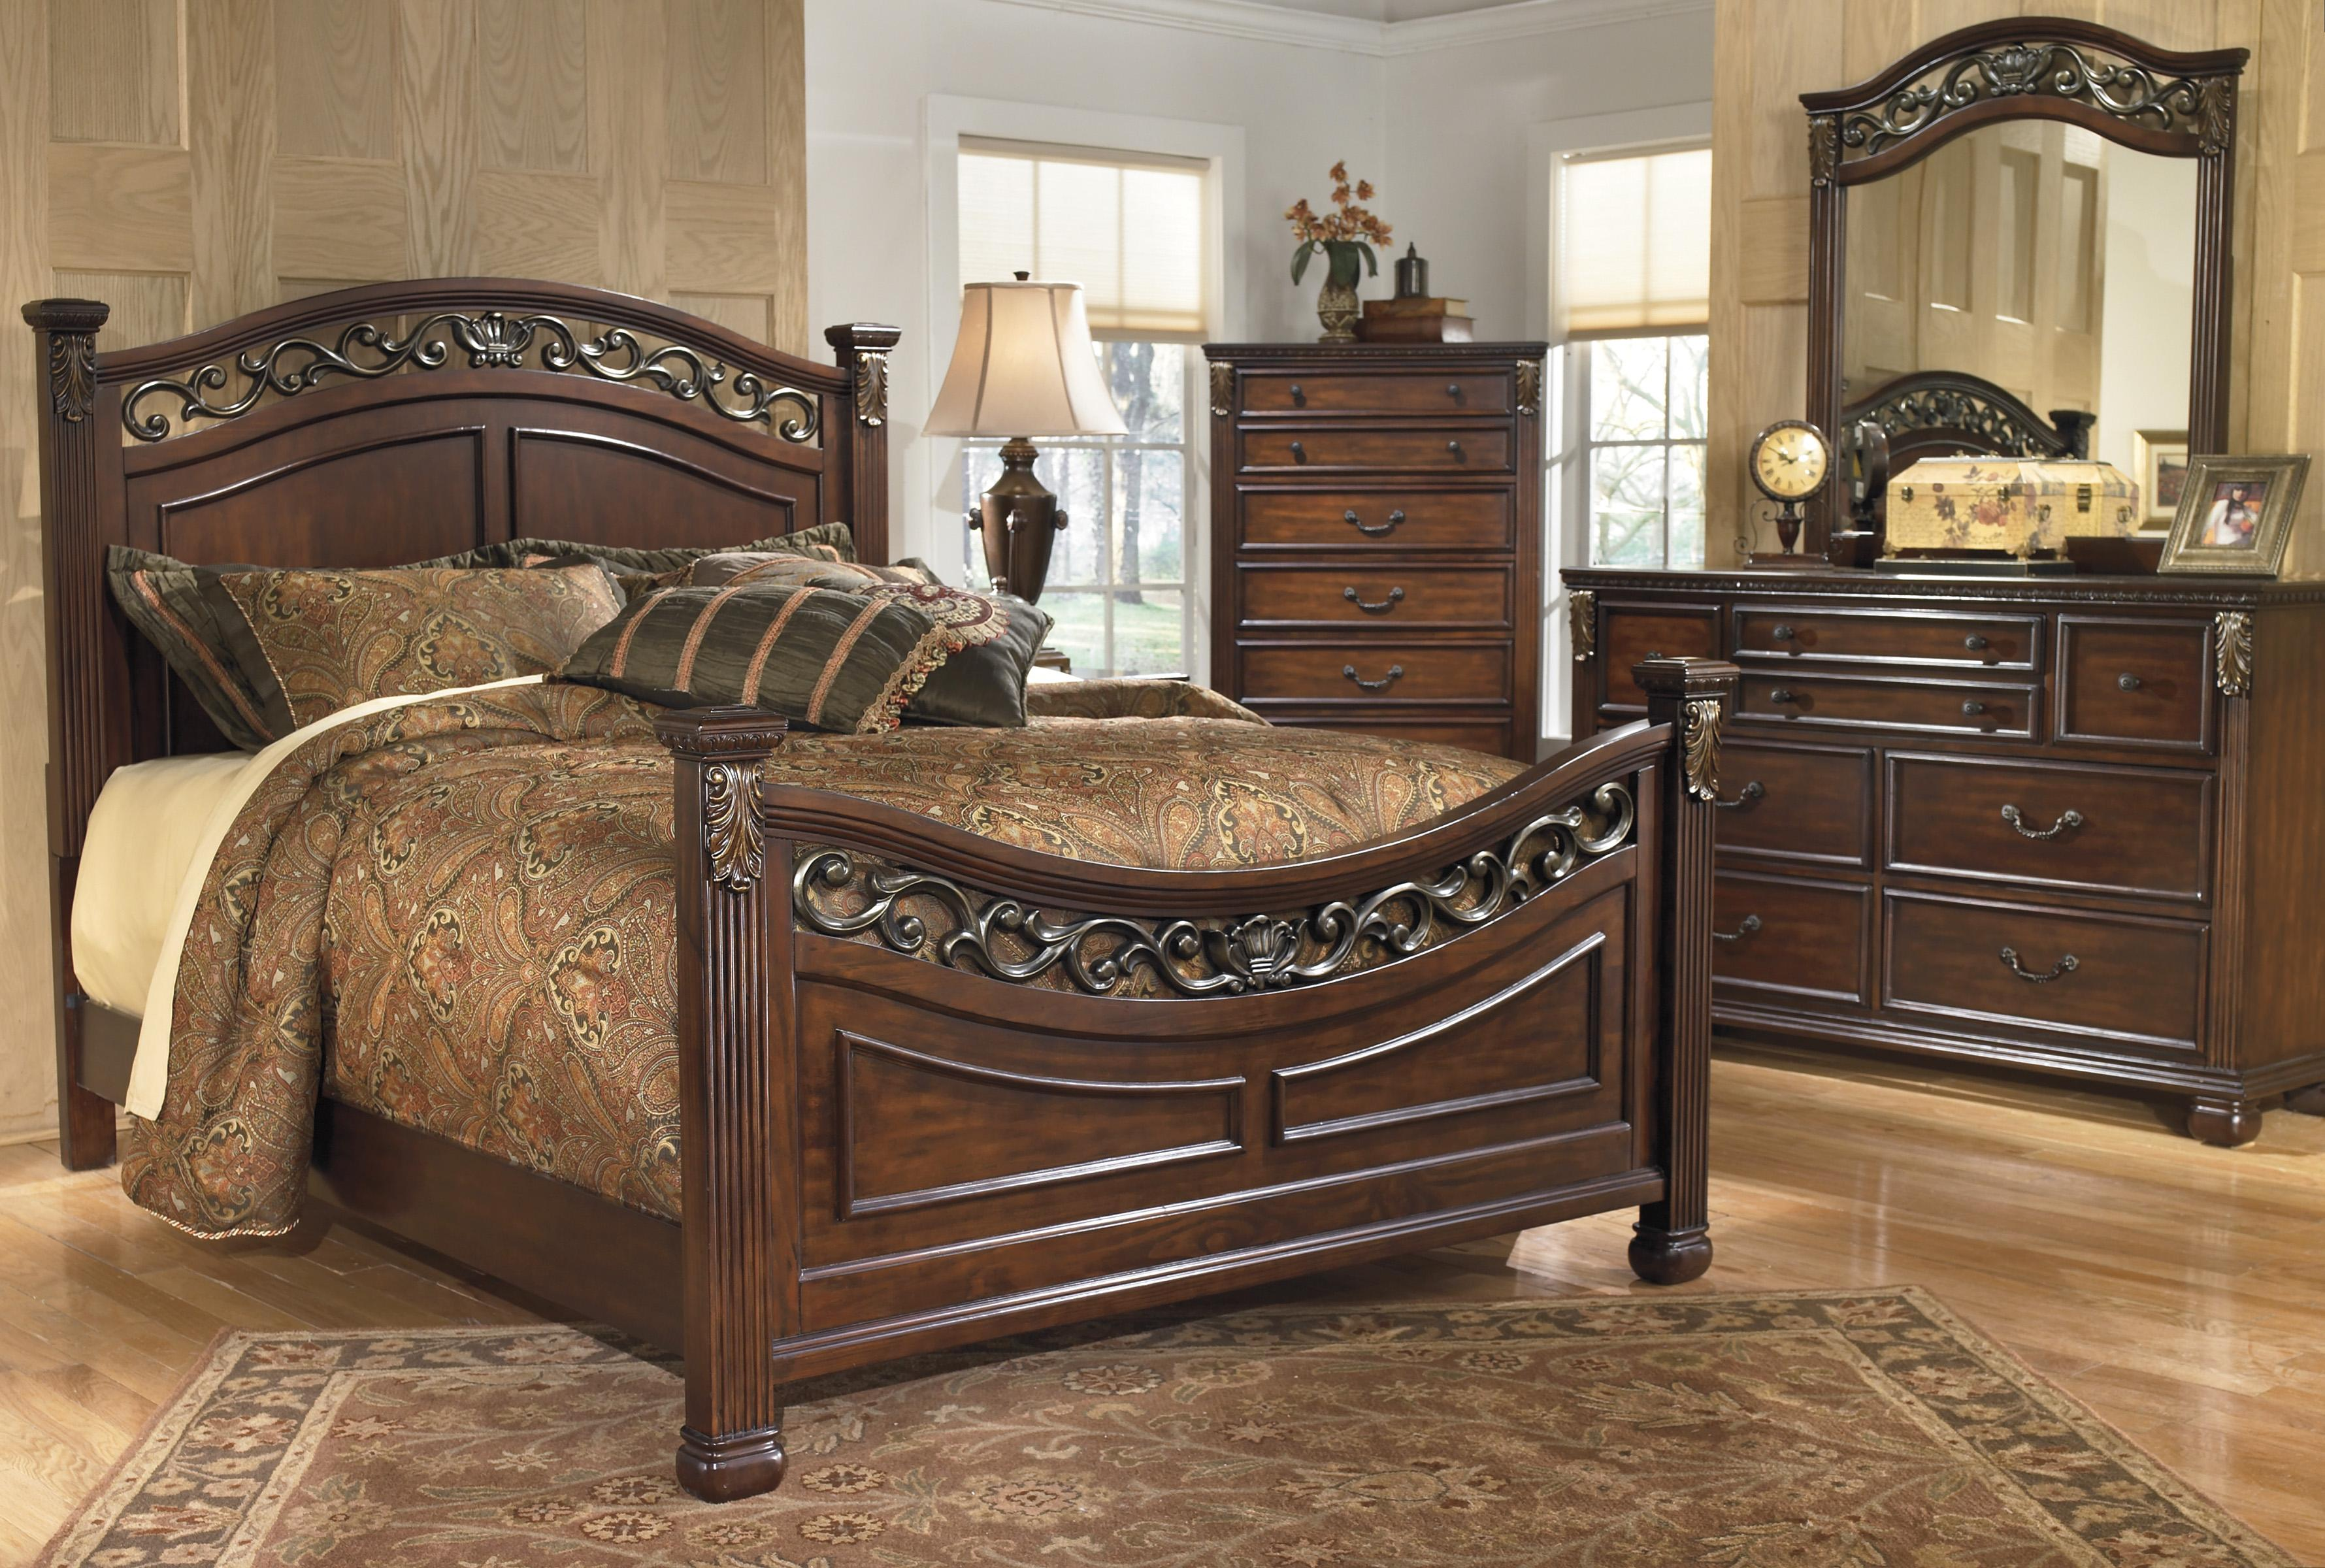 Signature Design by Ashley Leahlyn Queen Bedroom Group - Item Number: B526 Q Bedroom Group 2